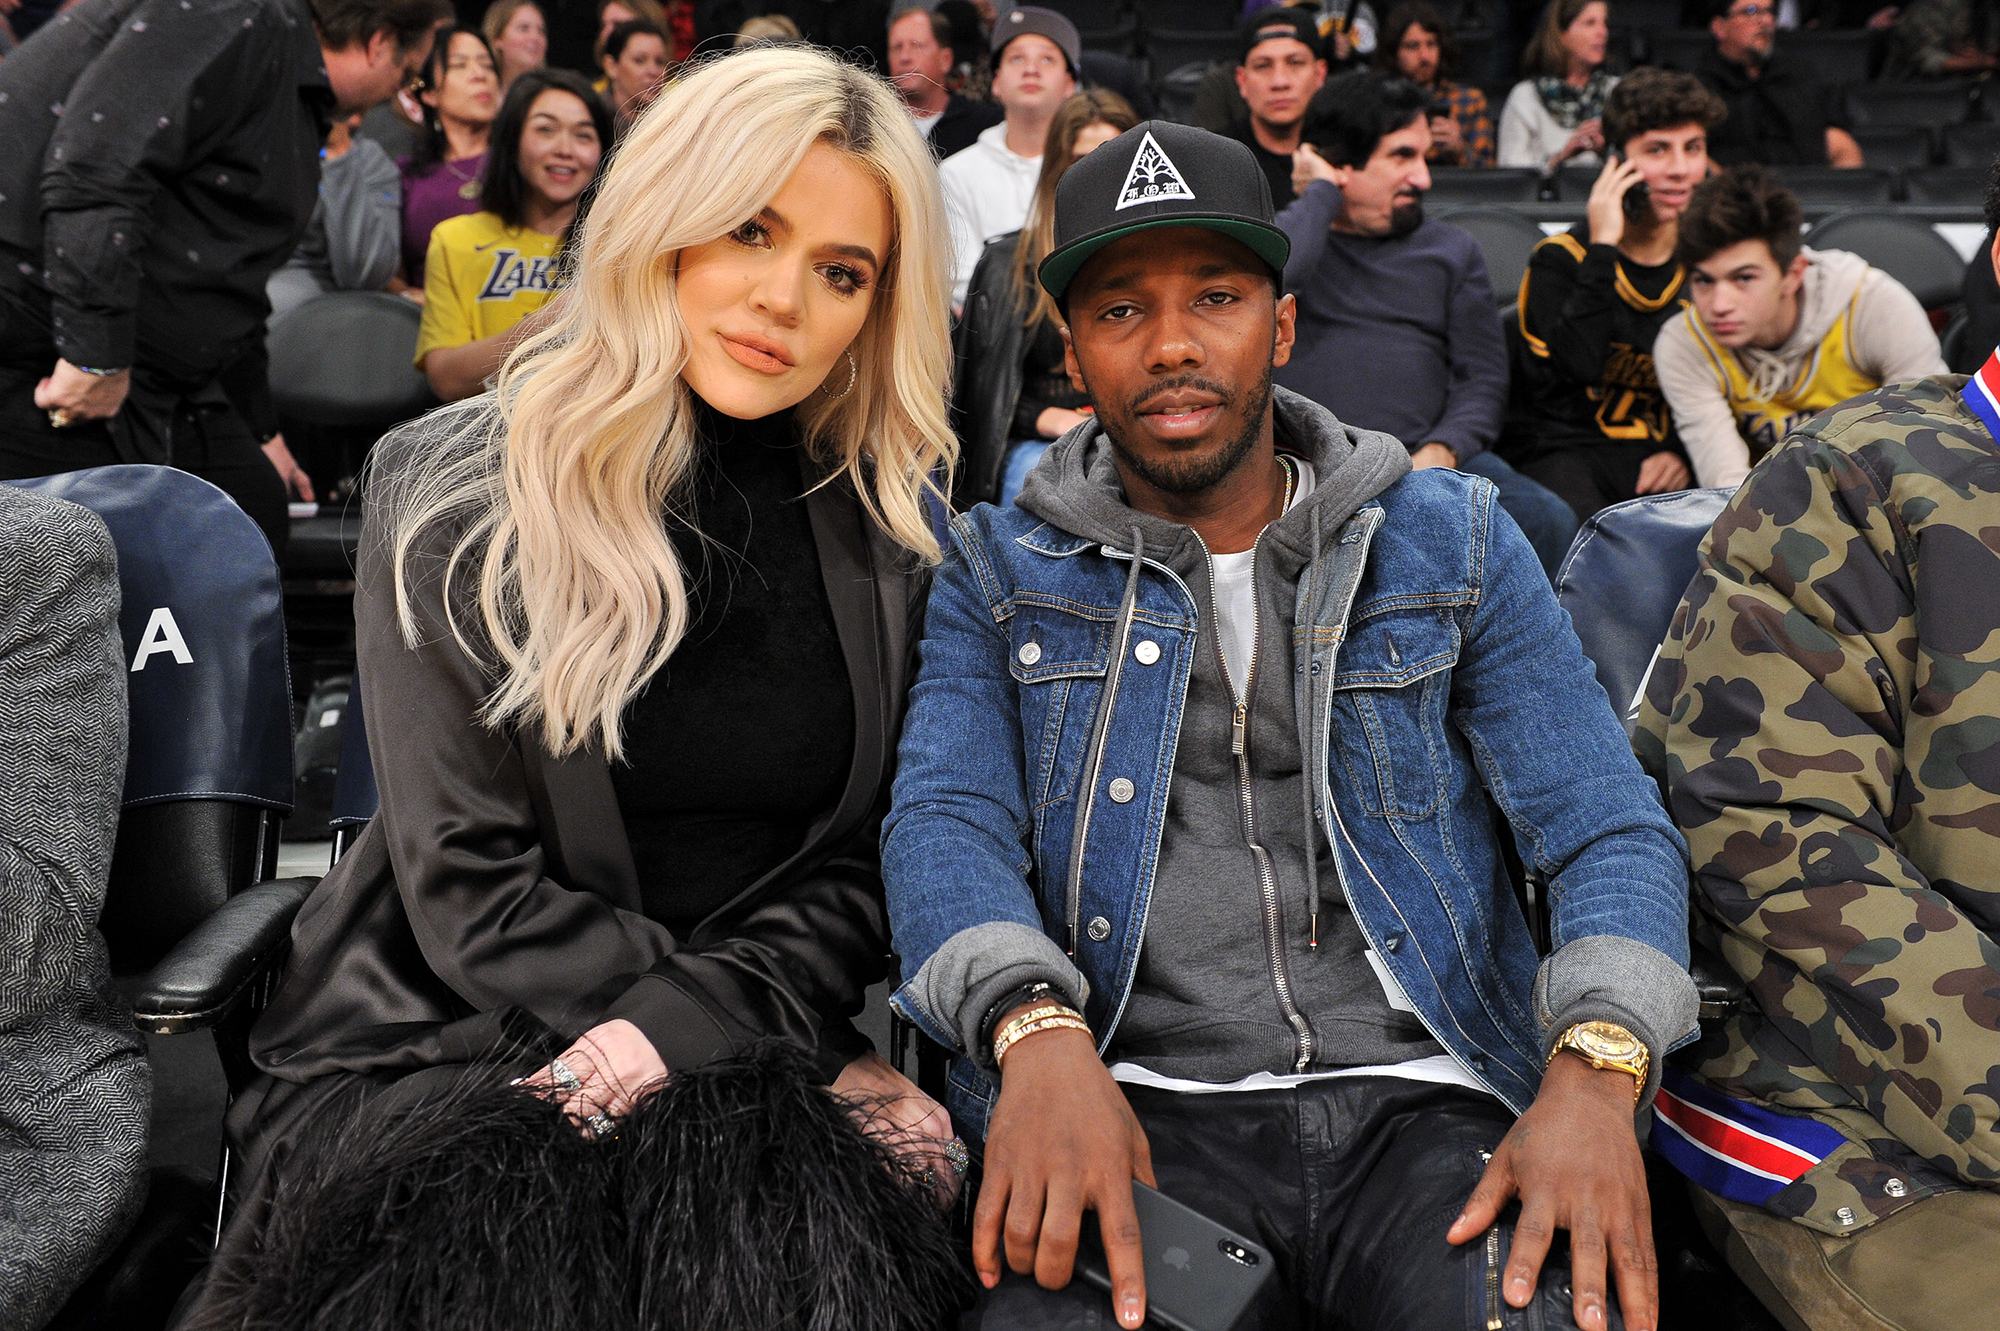 Khloe Kardashian Supports Beau Tristan Thompson Courtside at Cleveland Cavaliers Game - Kardashian sat next to sports agent Rich Paul during the game, and the two appeared to enjoy each other's company, even chatting together during the four quarters. Paul, 37, represents some of the NBA's biggest talents, including Thompson.